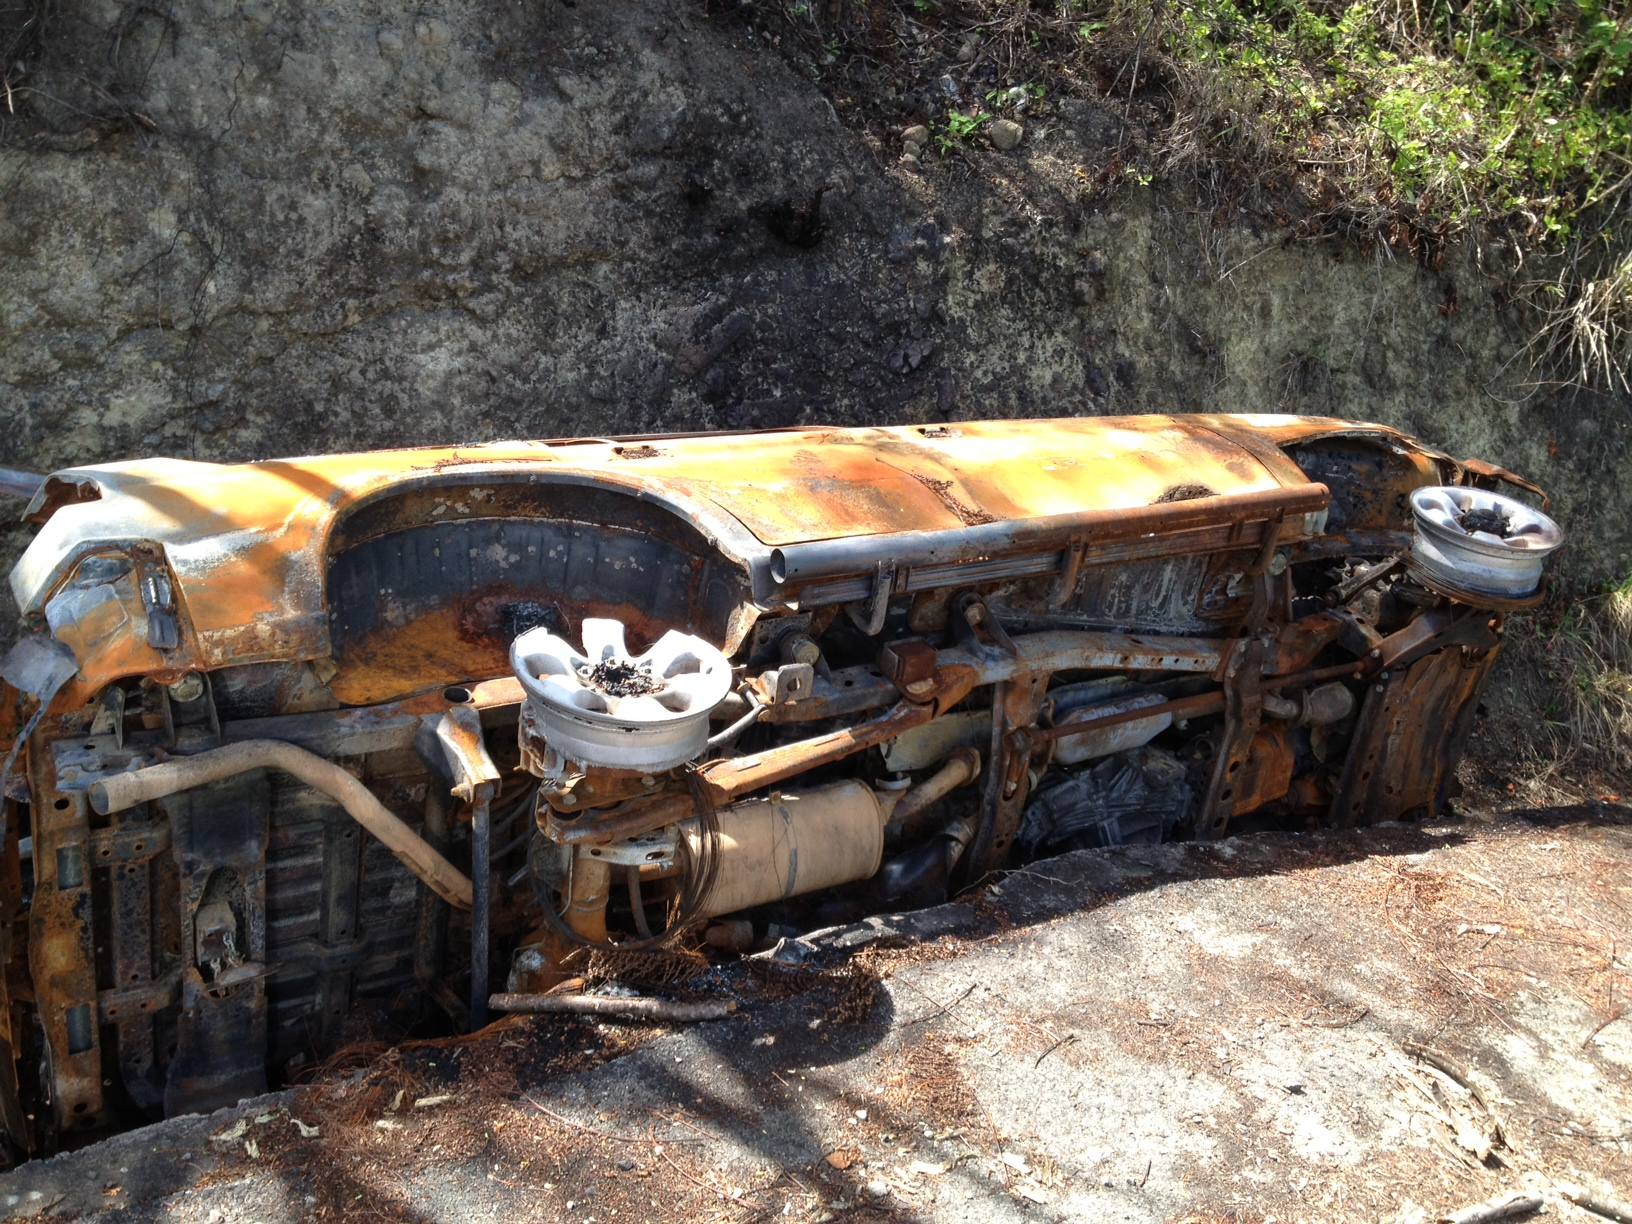 This wrecked car is one of many fallen victim to the rain ditches that line the trecherous and harrowing roads in Saint Lucia.